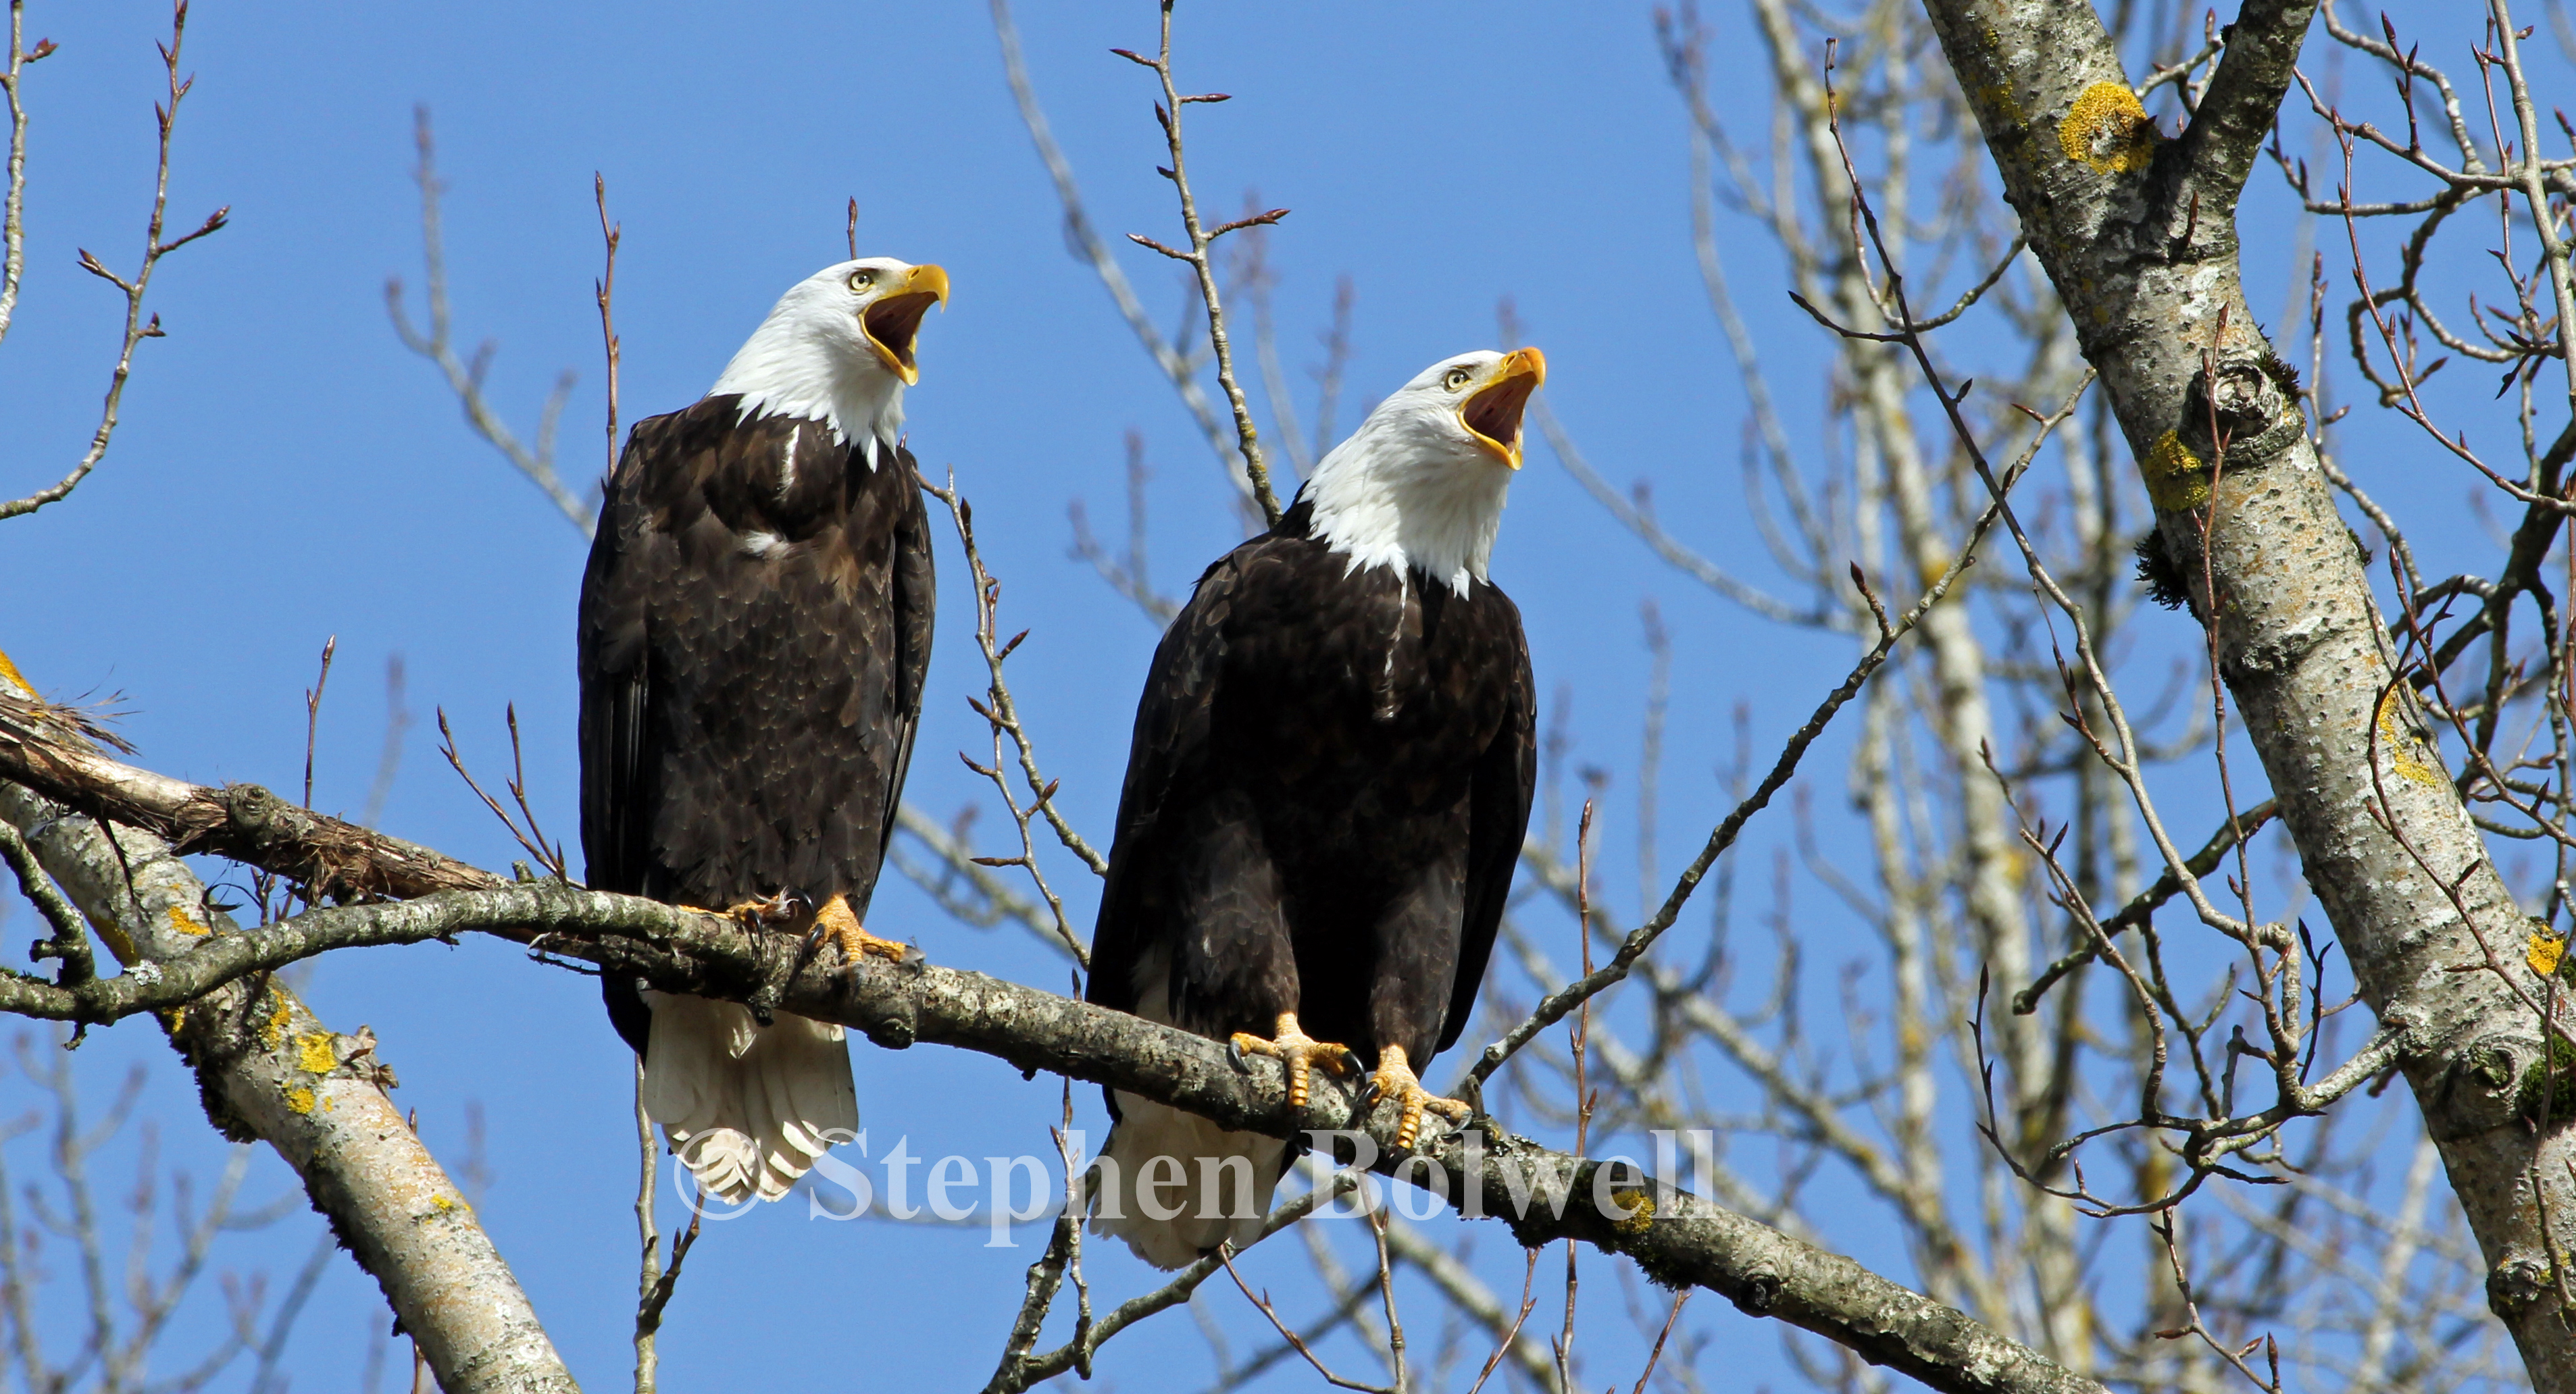 A pair of Canadian fish eagles close by the local nest having a chat. Well, more of a screech really.